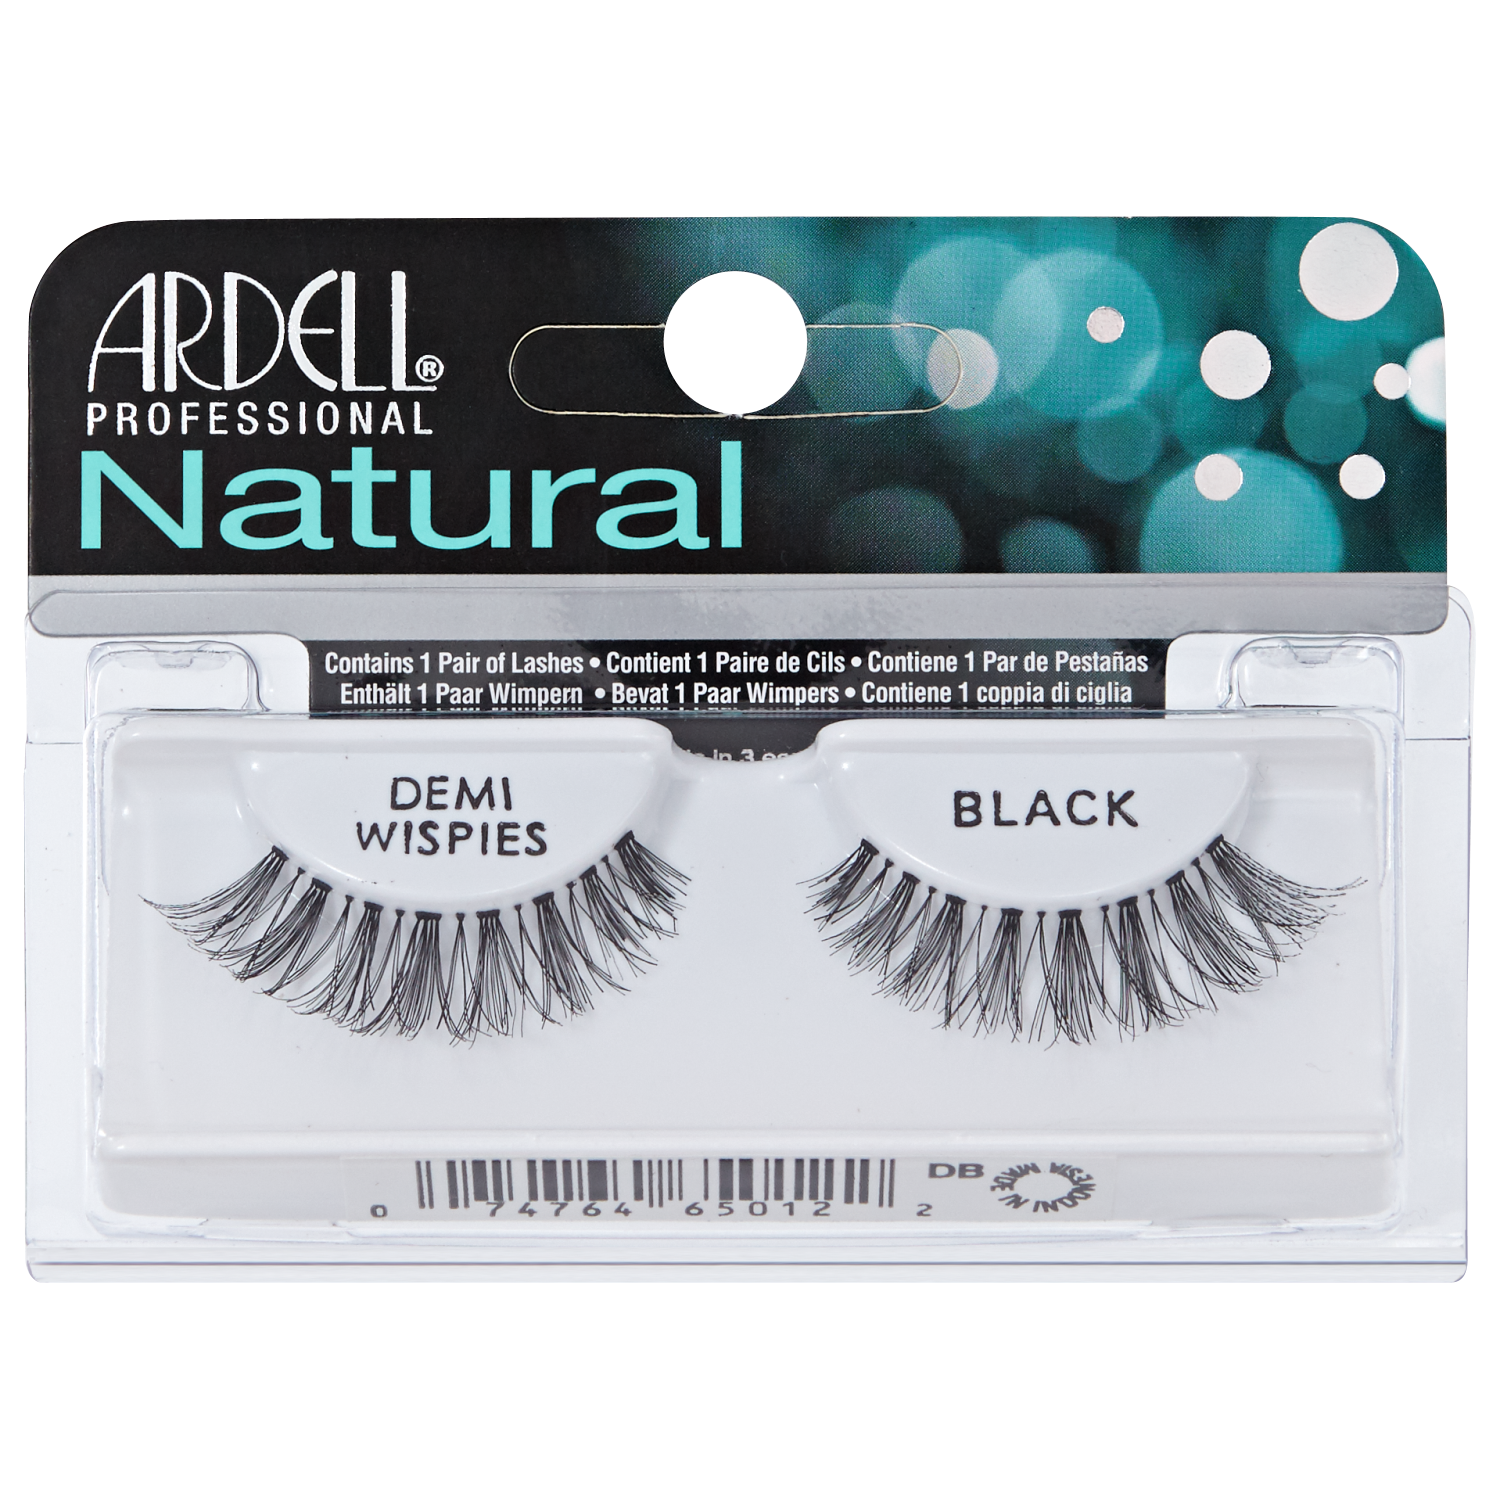 Ardell Invisibands Natural Lashes Demi Wispies Black look so real you will have a hard time telling the difference.